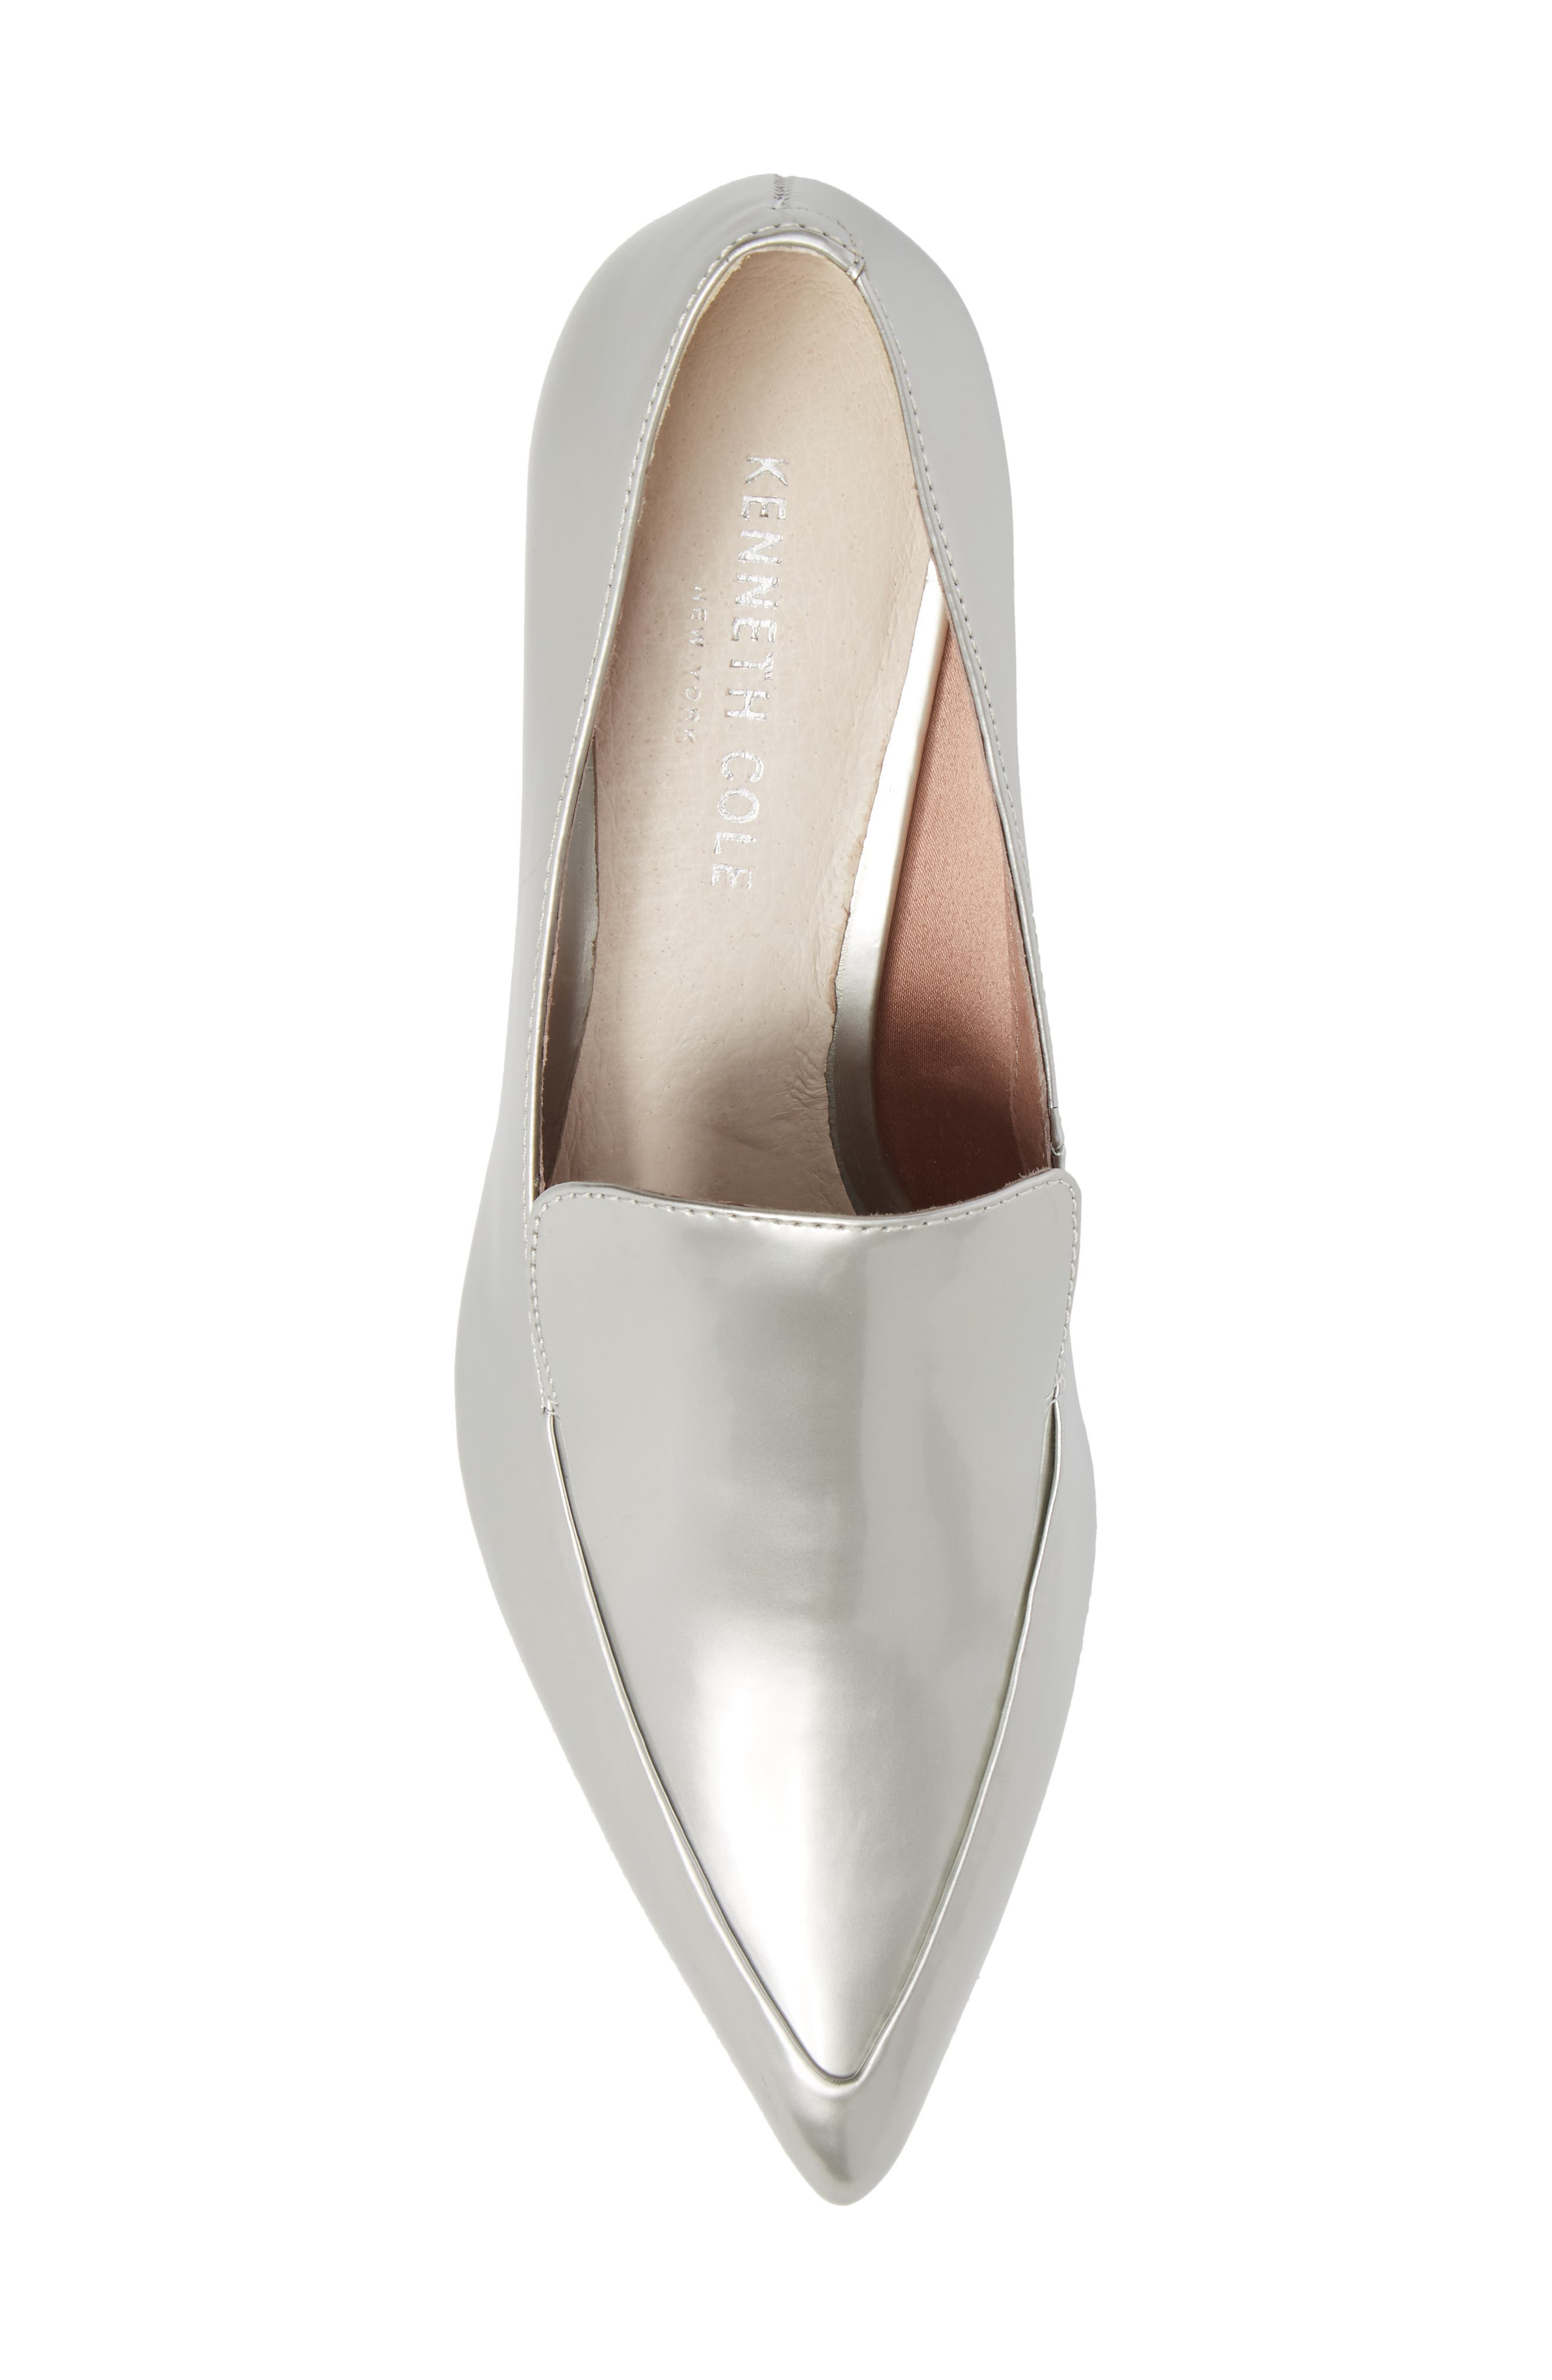 Shea Loafer Pump,                             Alternate thumbnail 5, color,                             Silver Metallic Leather